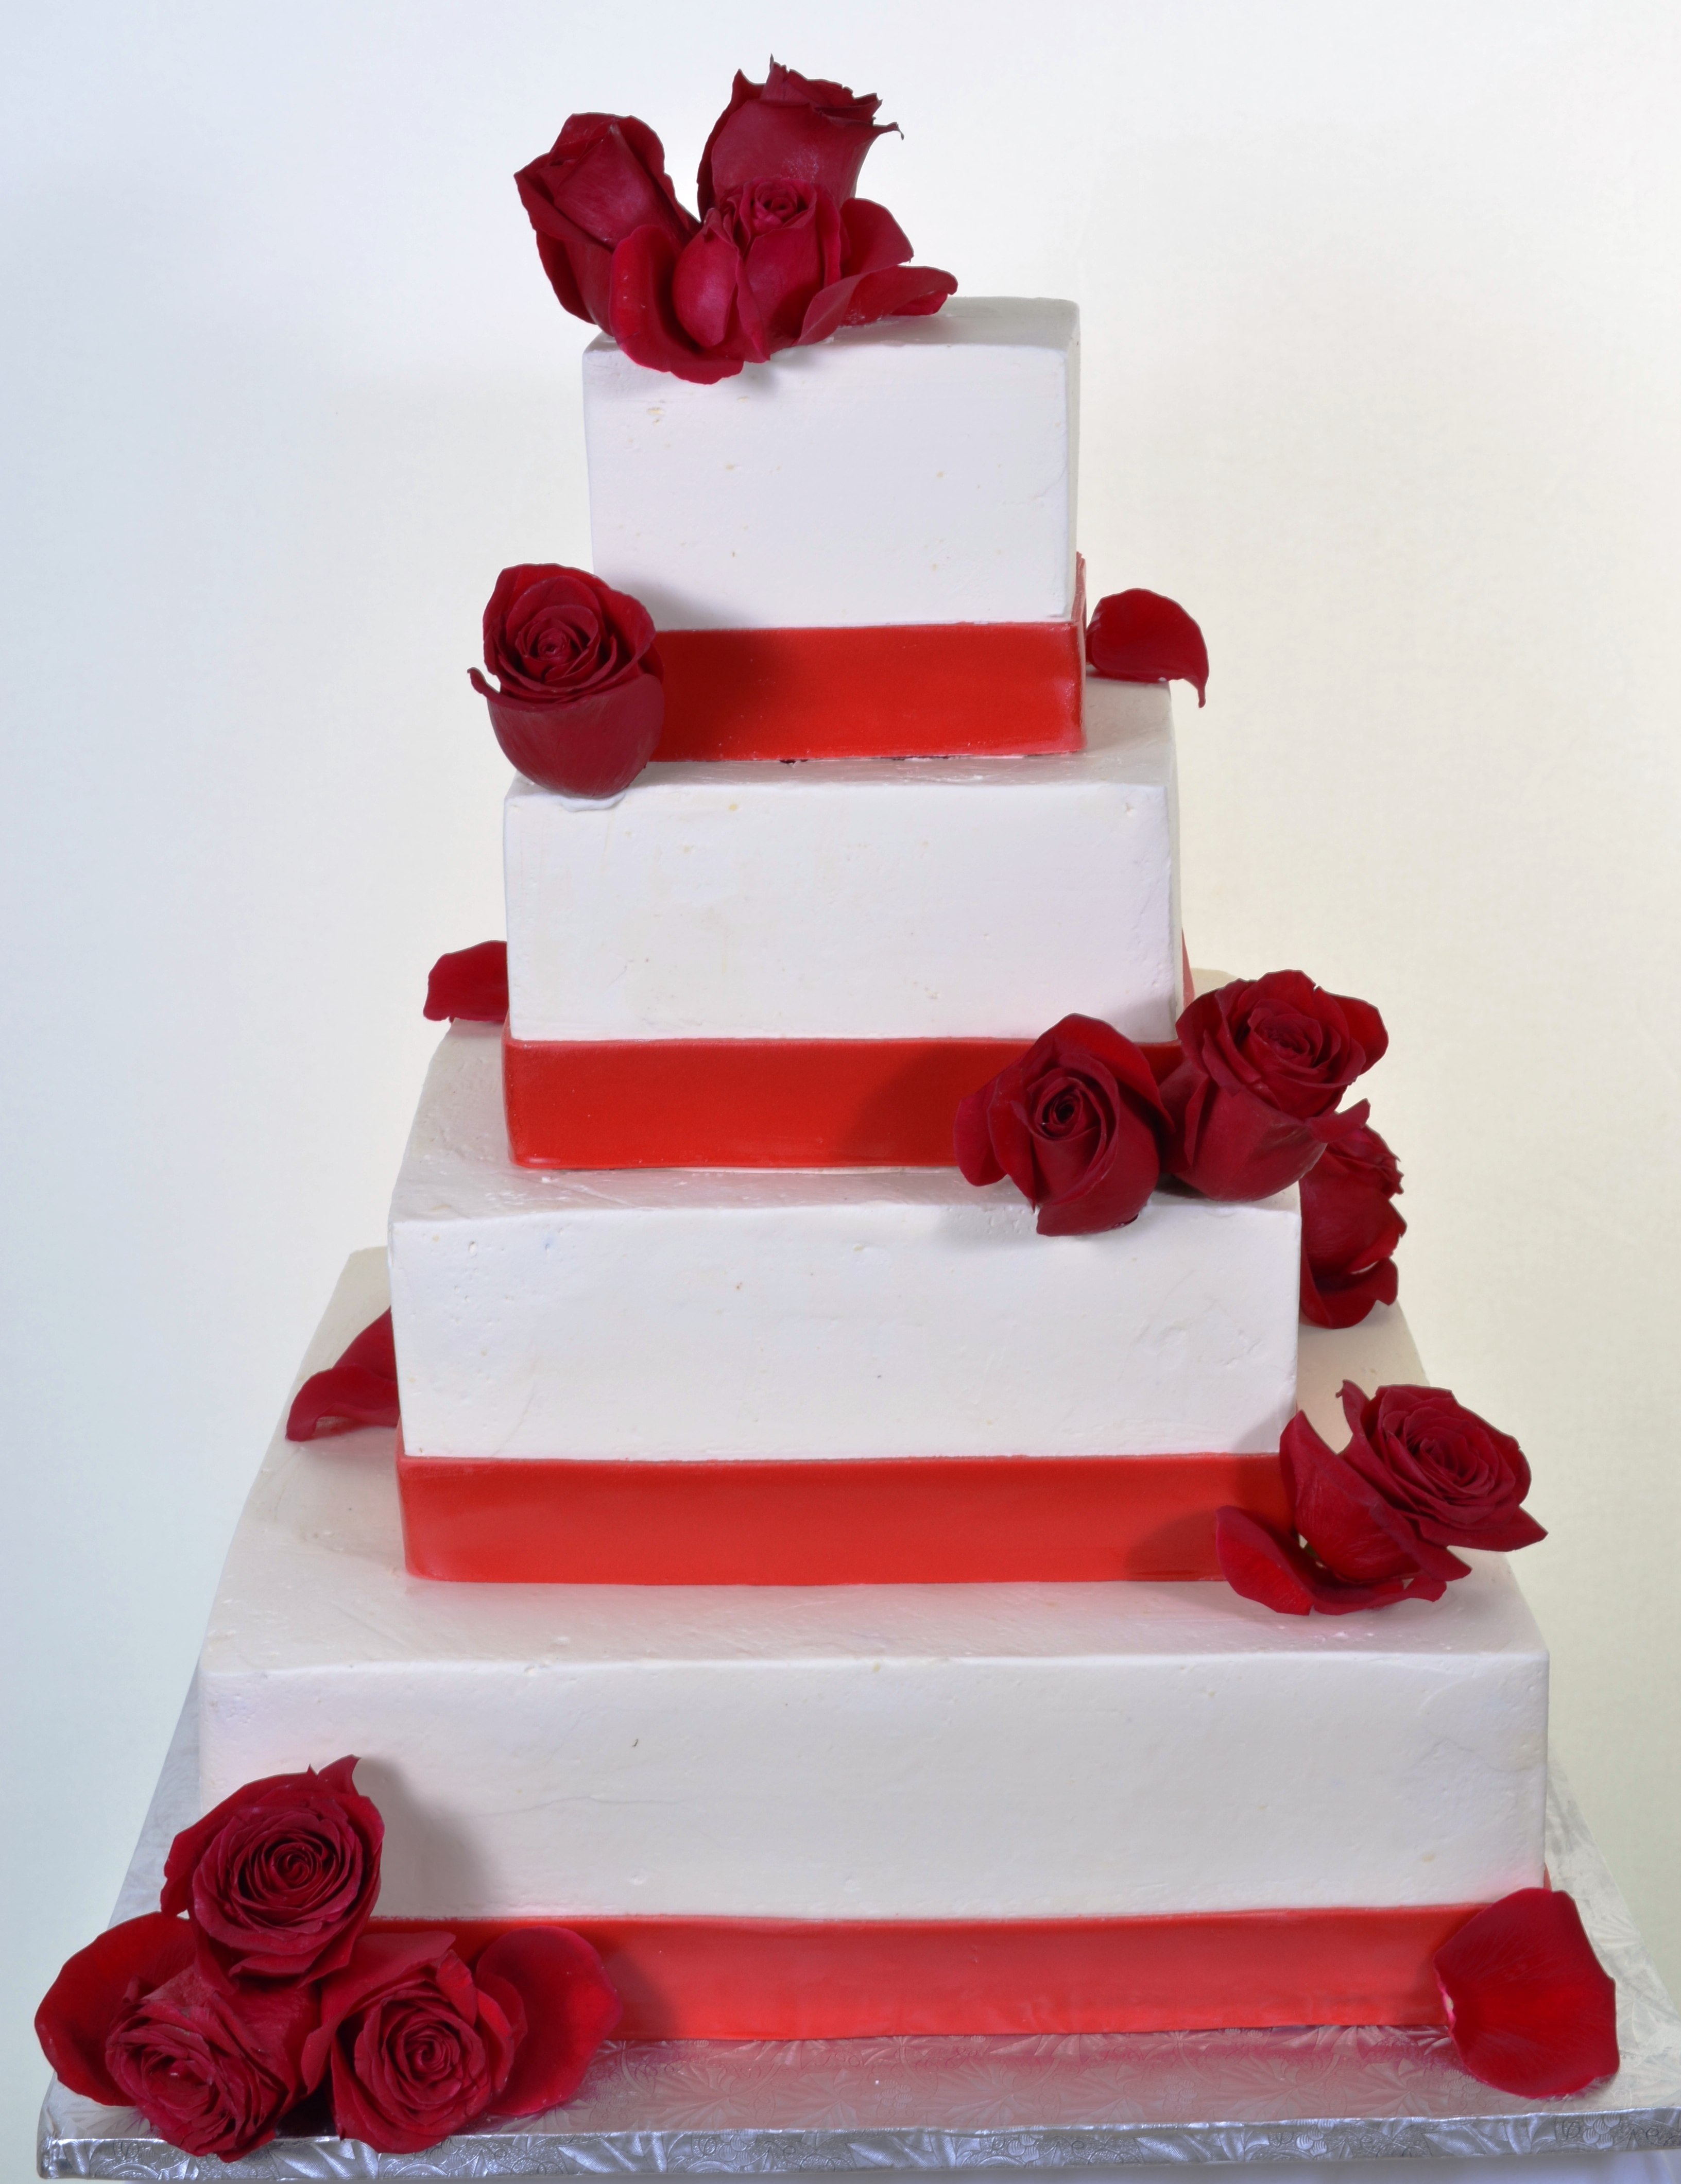 Pastry Palace Wedding Cake #912 - Red Squares